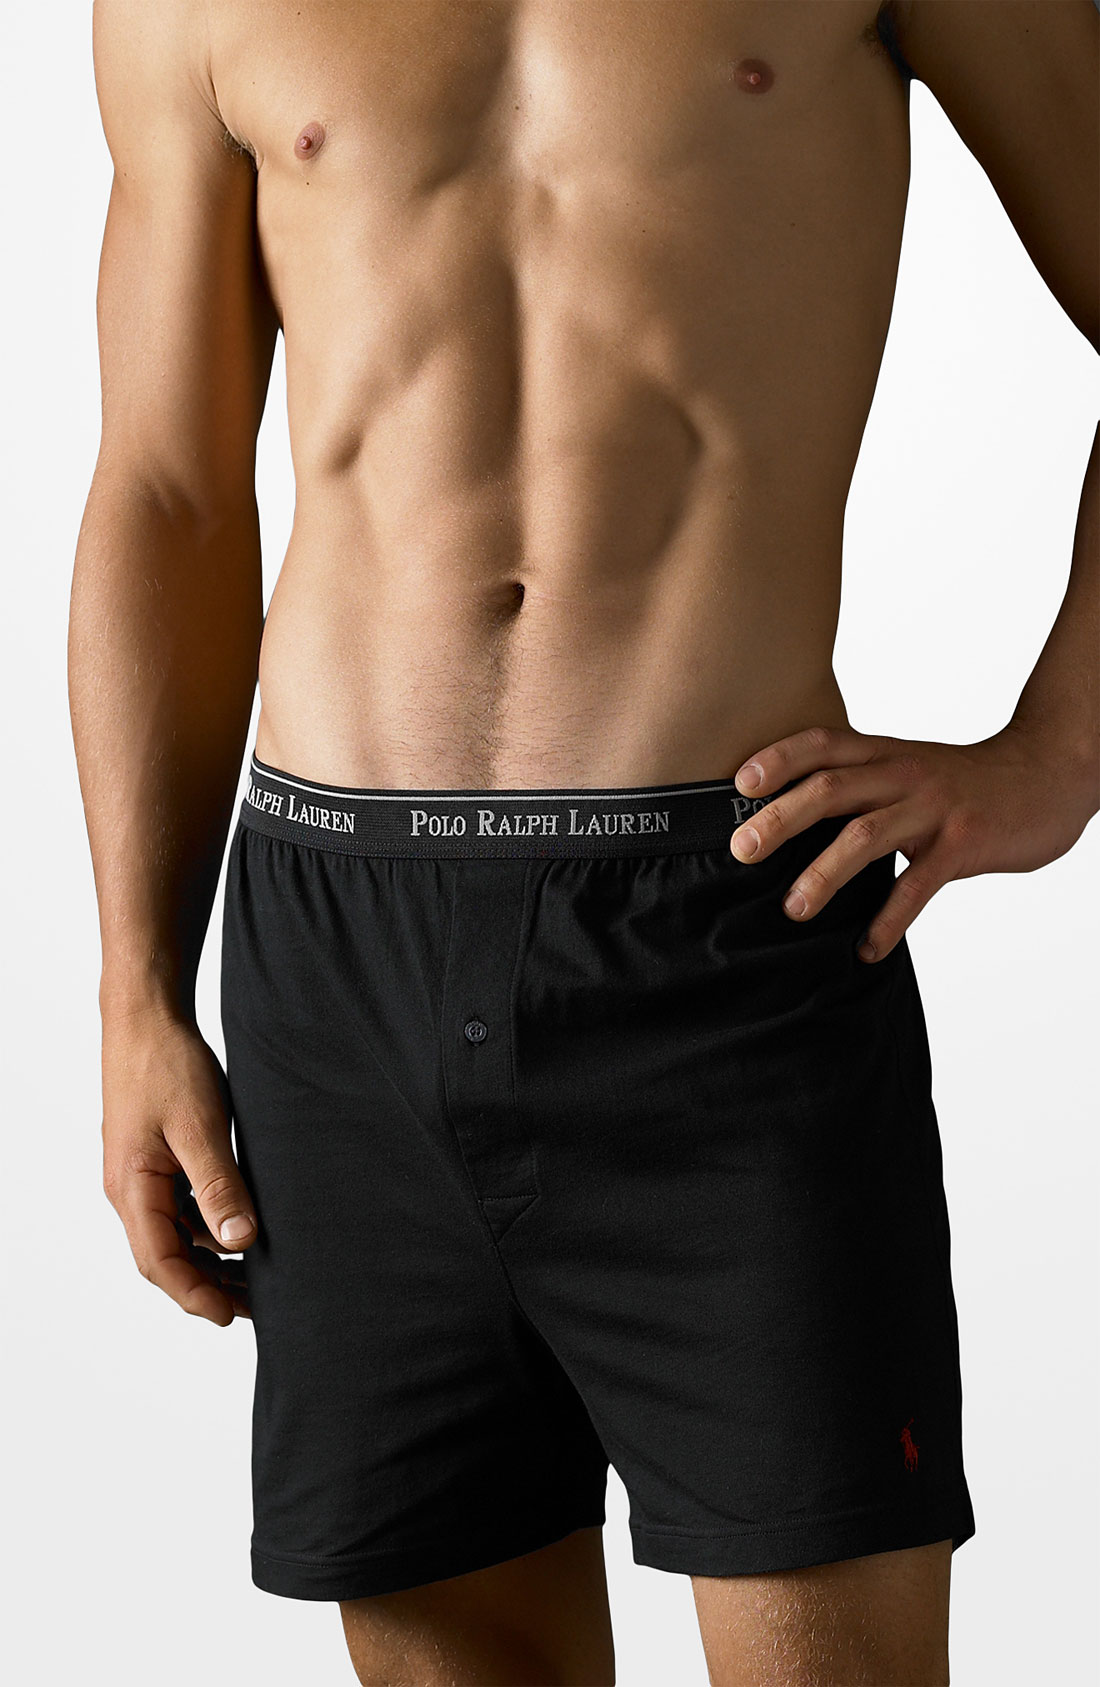 lyst polo ralph lauren boxers 3 pack in black for men. Black Bedroom Furniture Sets. Home Design Ideas